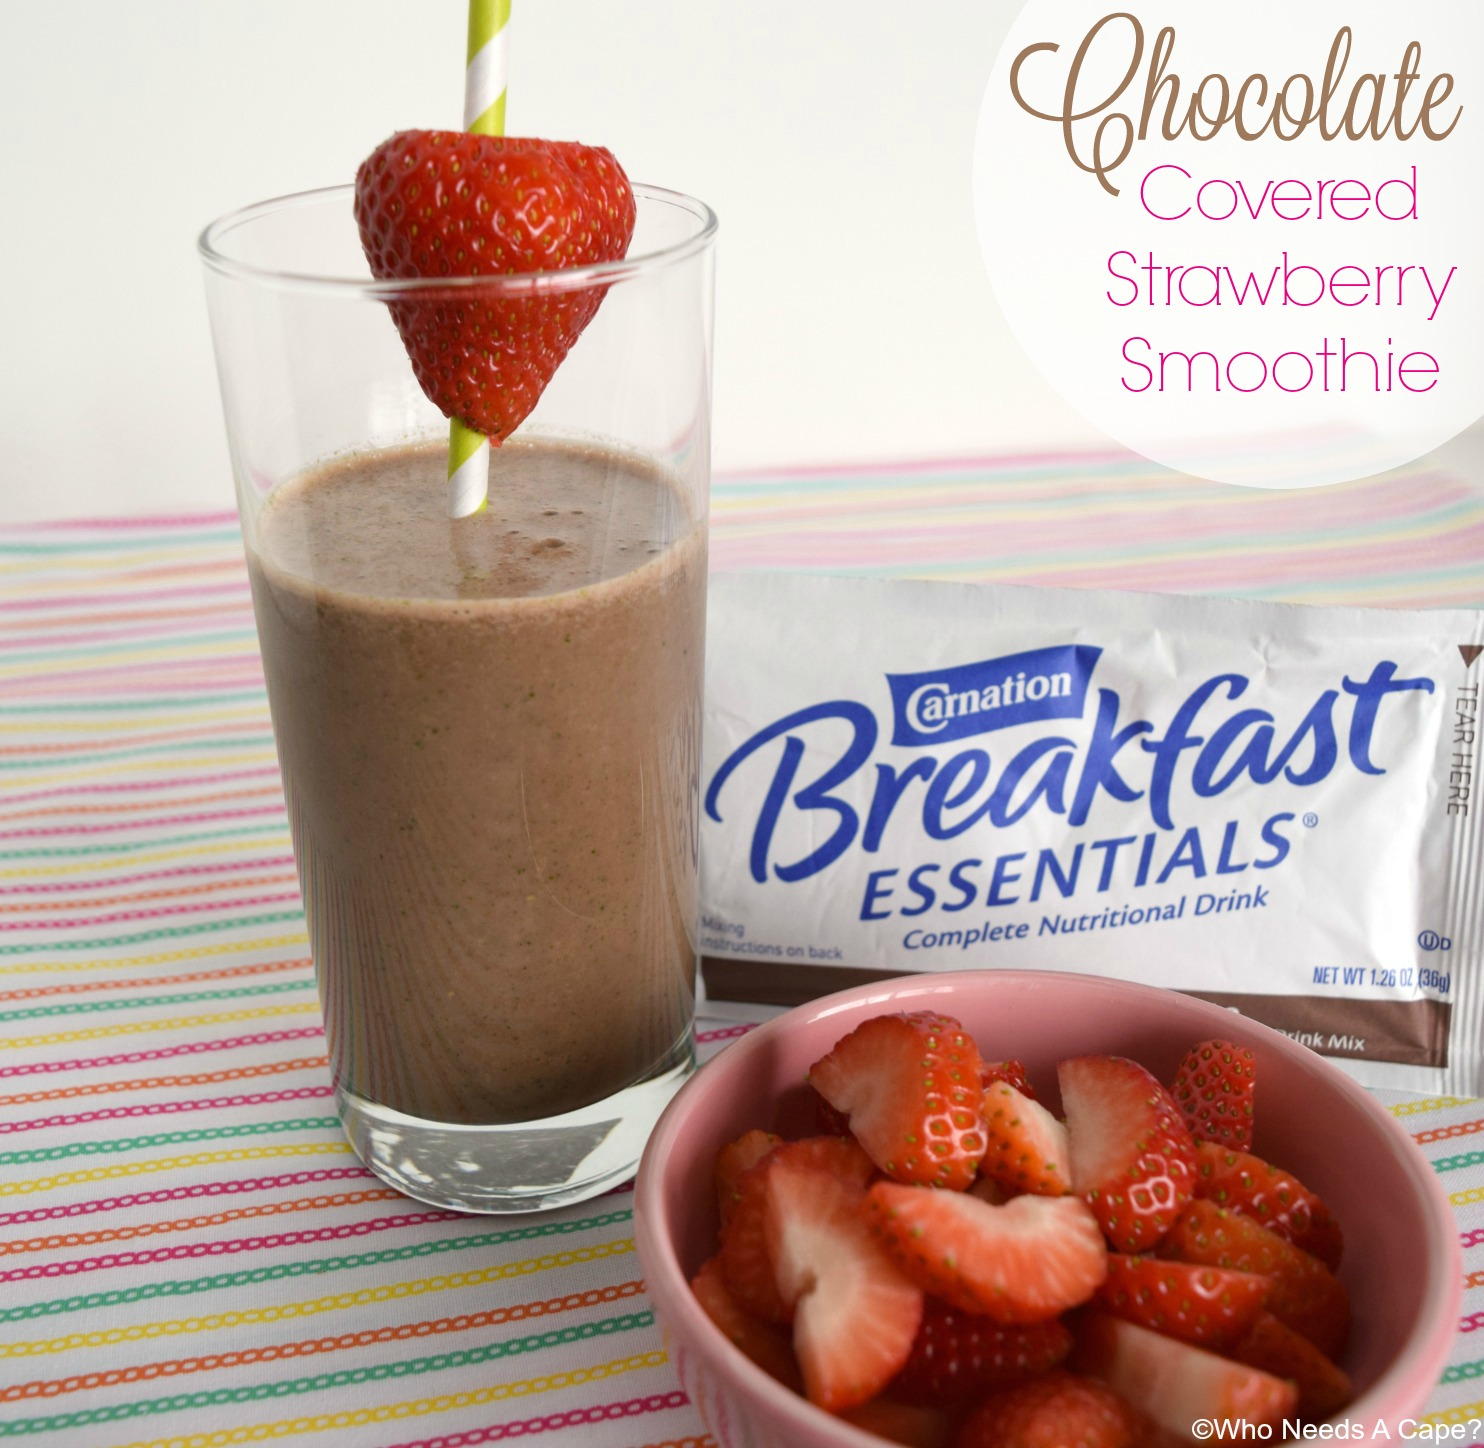 This Chocolate Covered Strawberry Smoothie is a deliciously easy solution to breakfast. In less than 5 minutes you'll have a tasty drink.